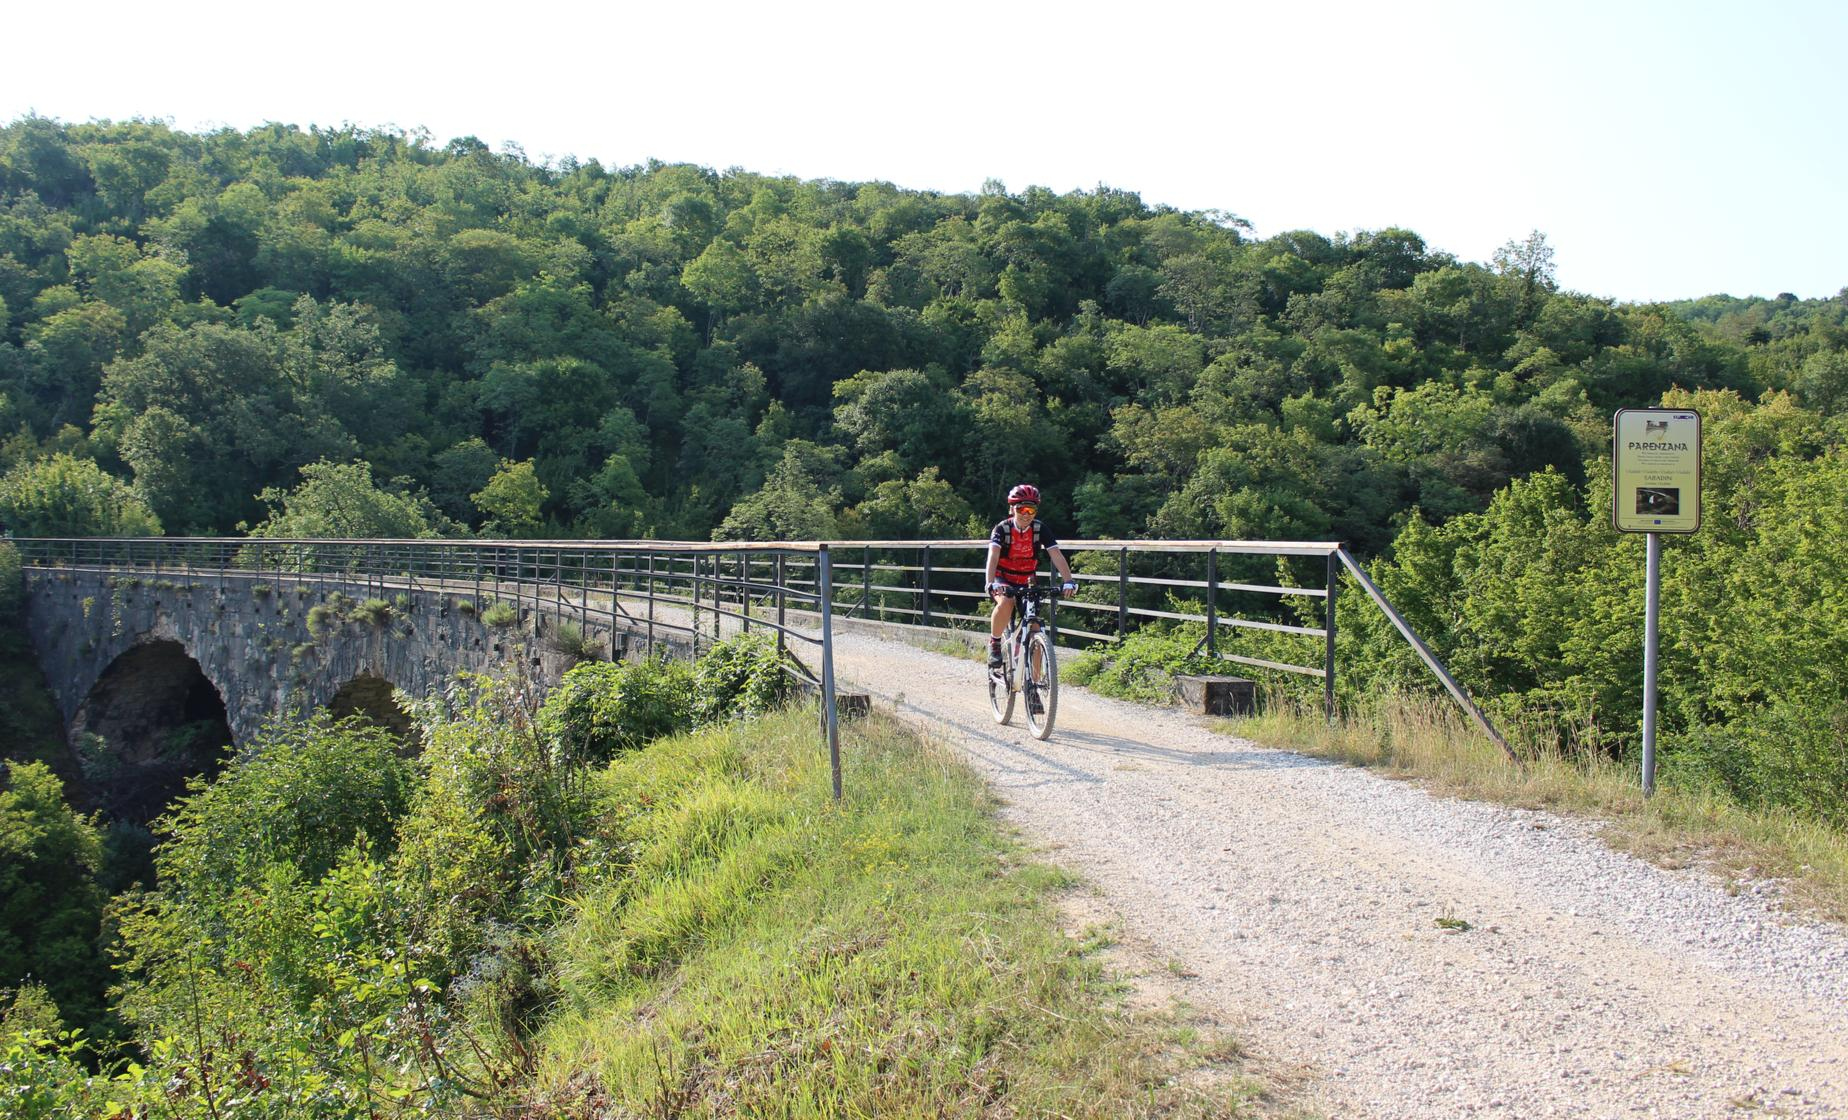 Biking the Parenzana Trail